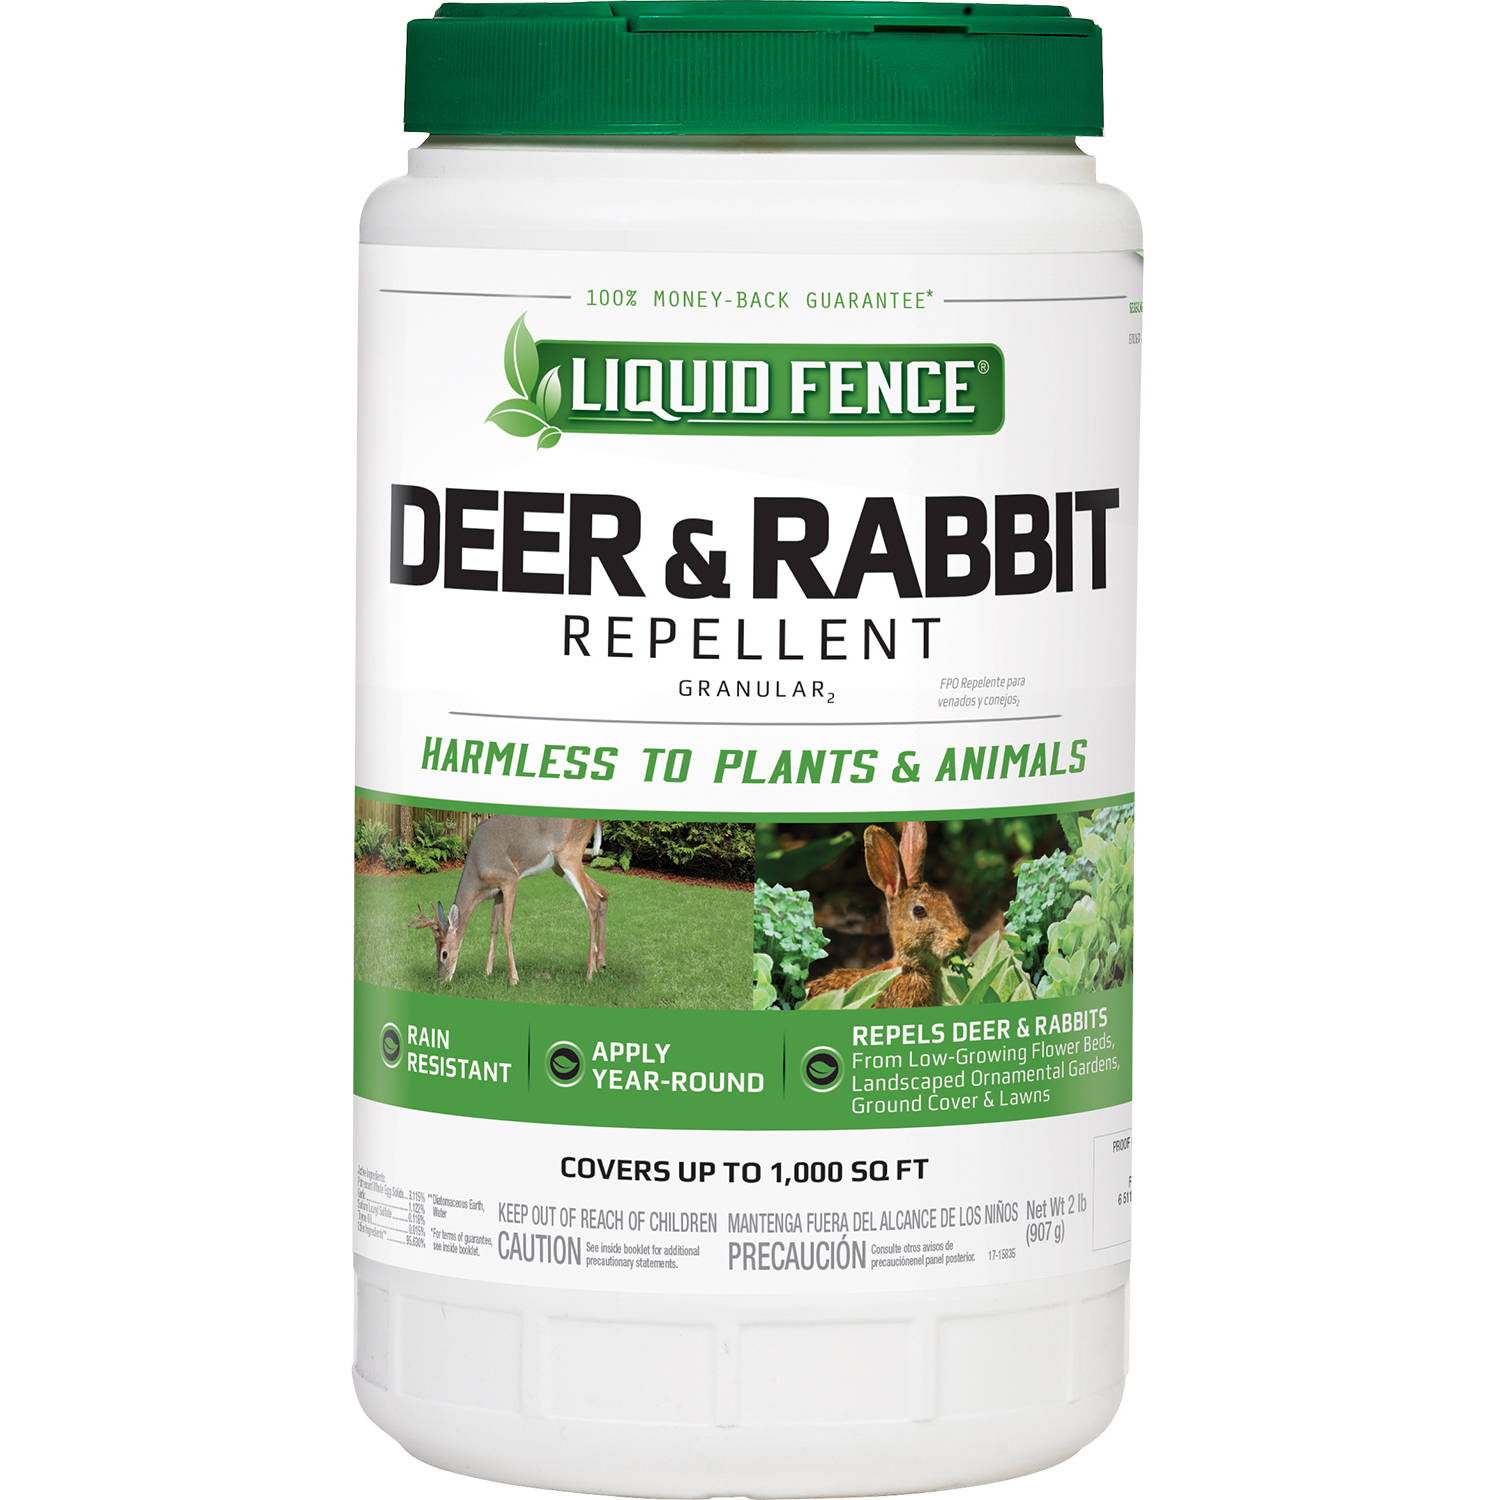 Liquid Fence Deer and Rabbit Repellent Granular, 2 lb